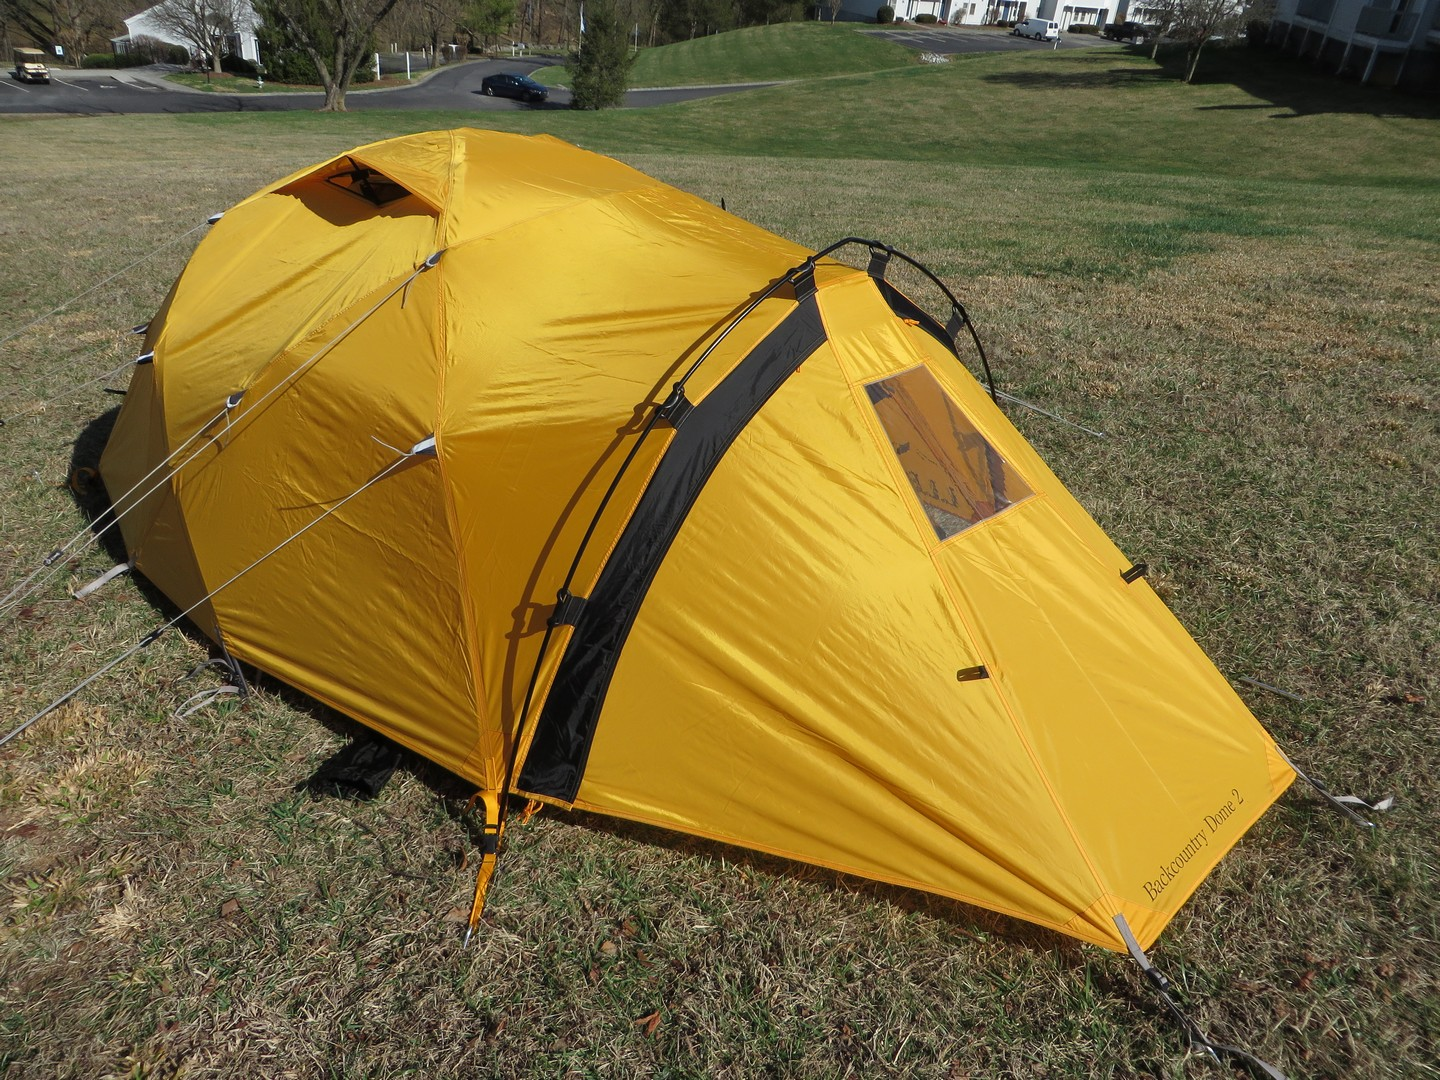 L.L.Bean Backcountry 2 Dome Tent Review & TreeLineBackpacker | Backpacking Gear Reviews tips and news.